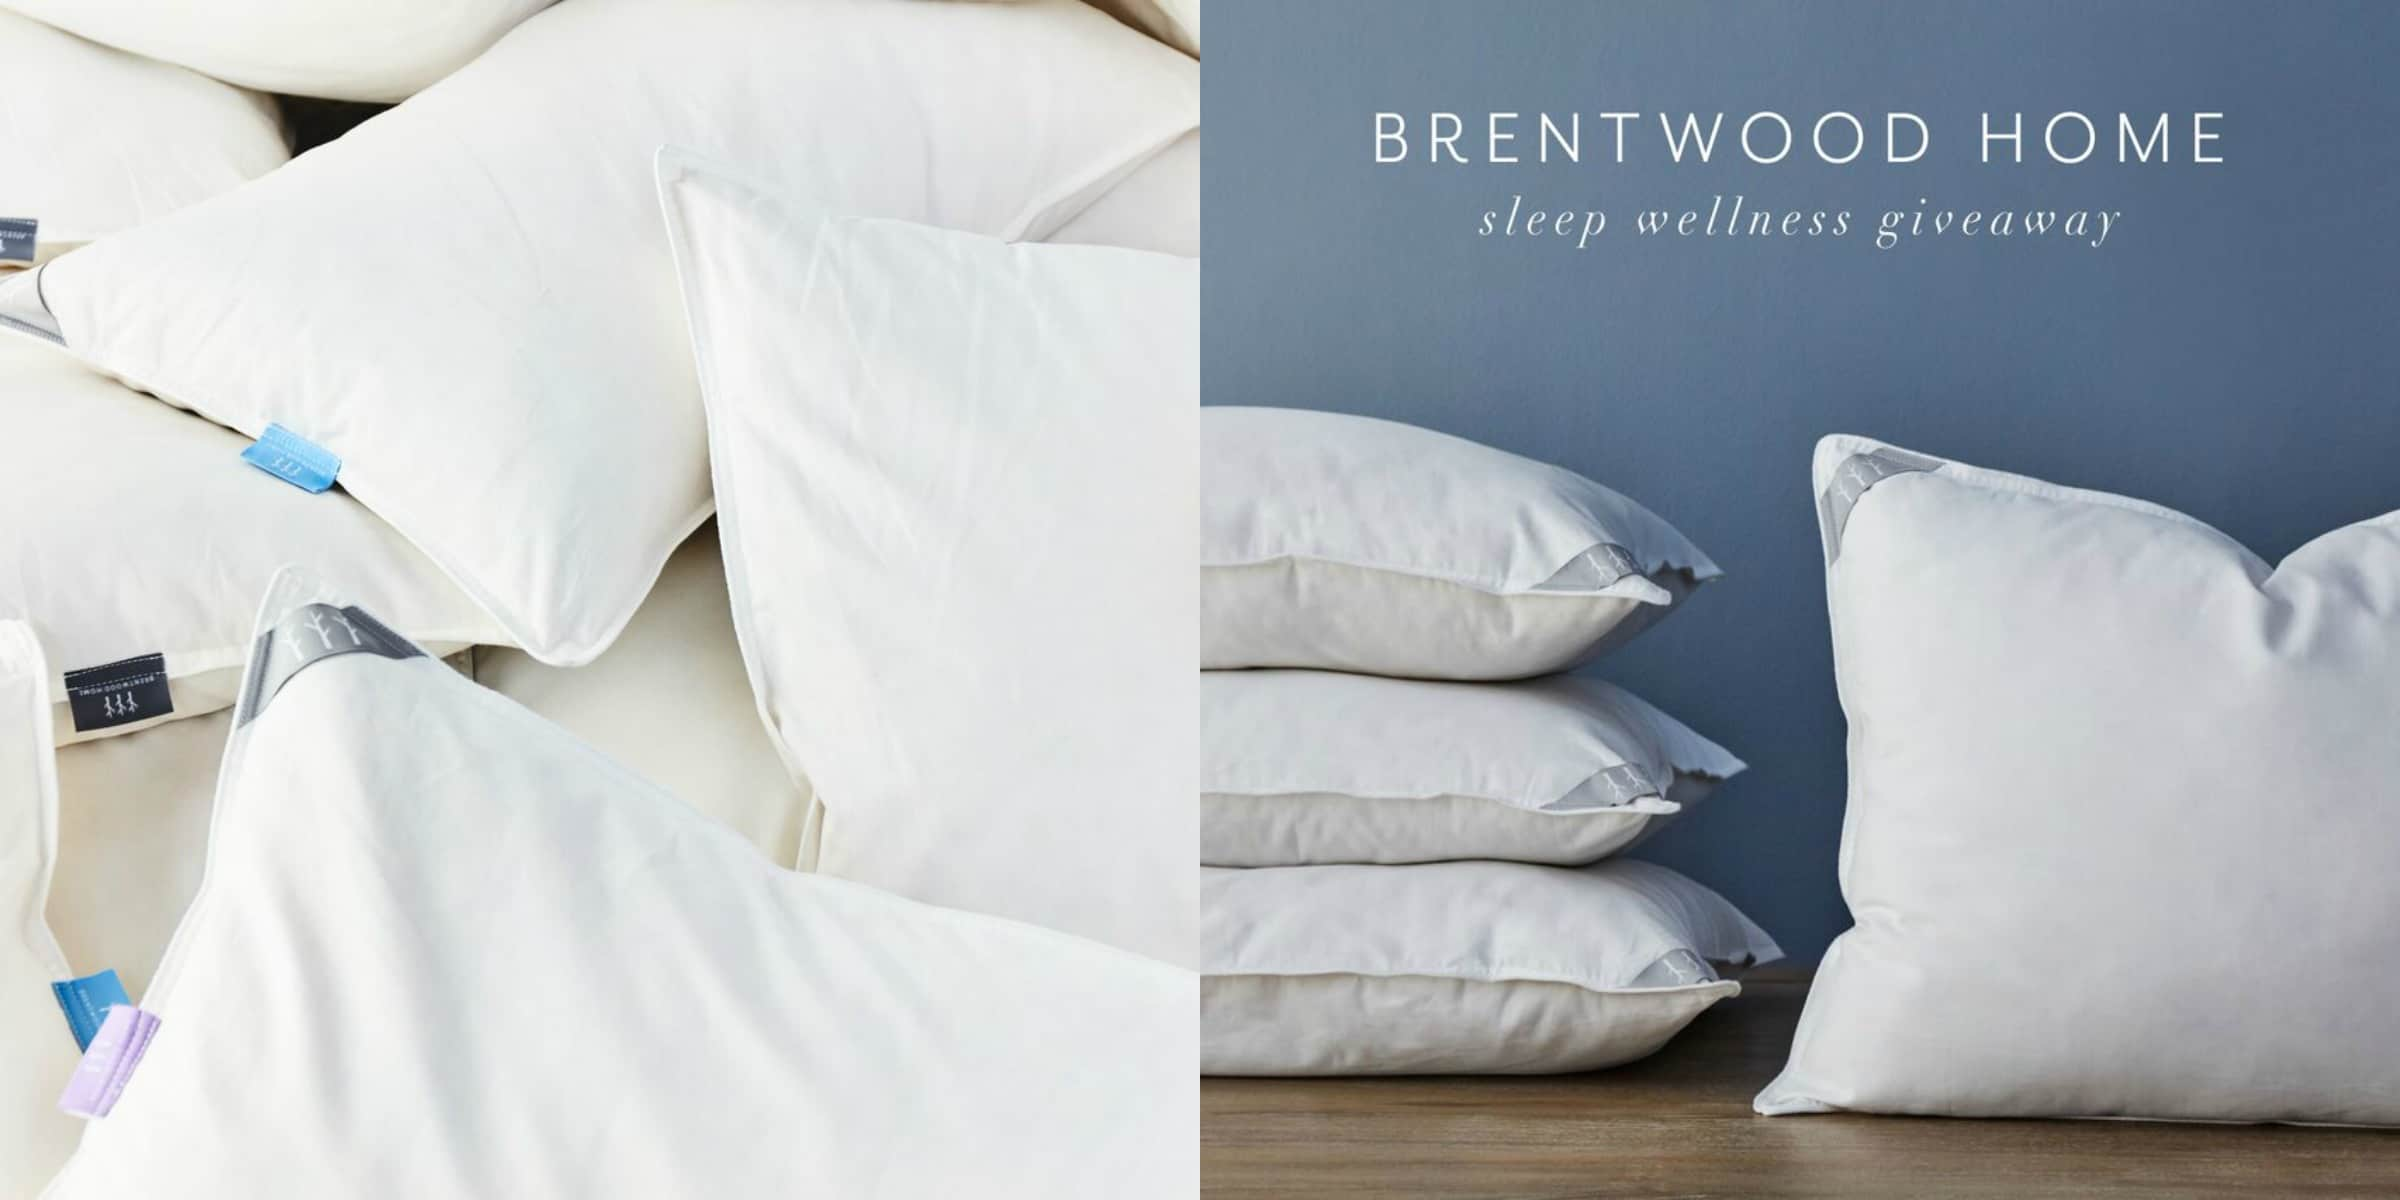 Brentwood home pillow giveaway